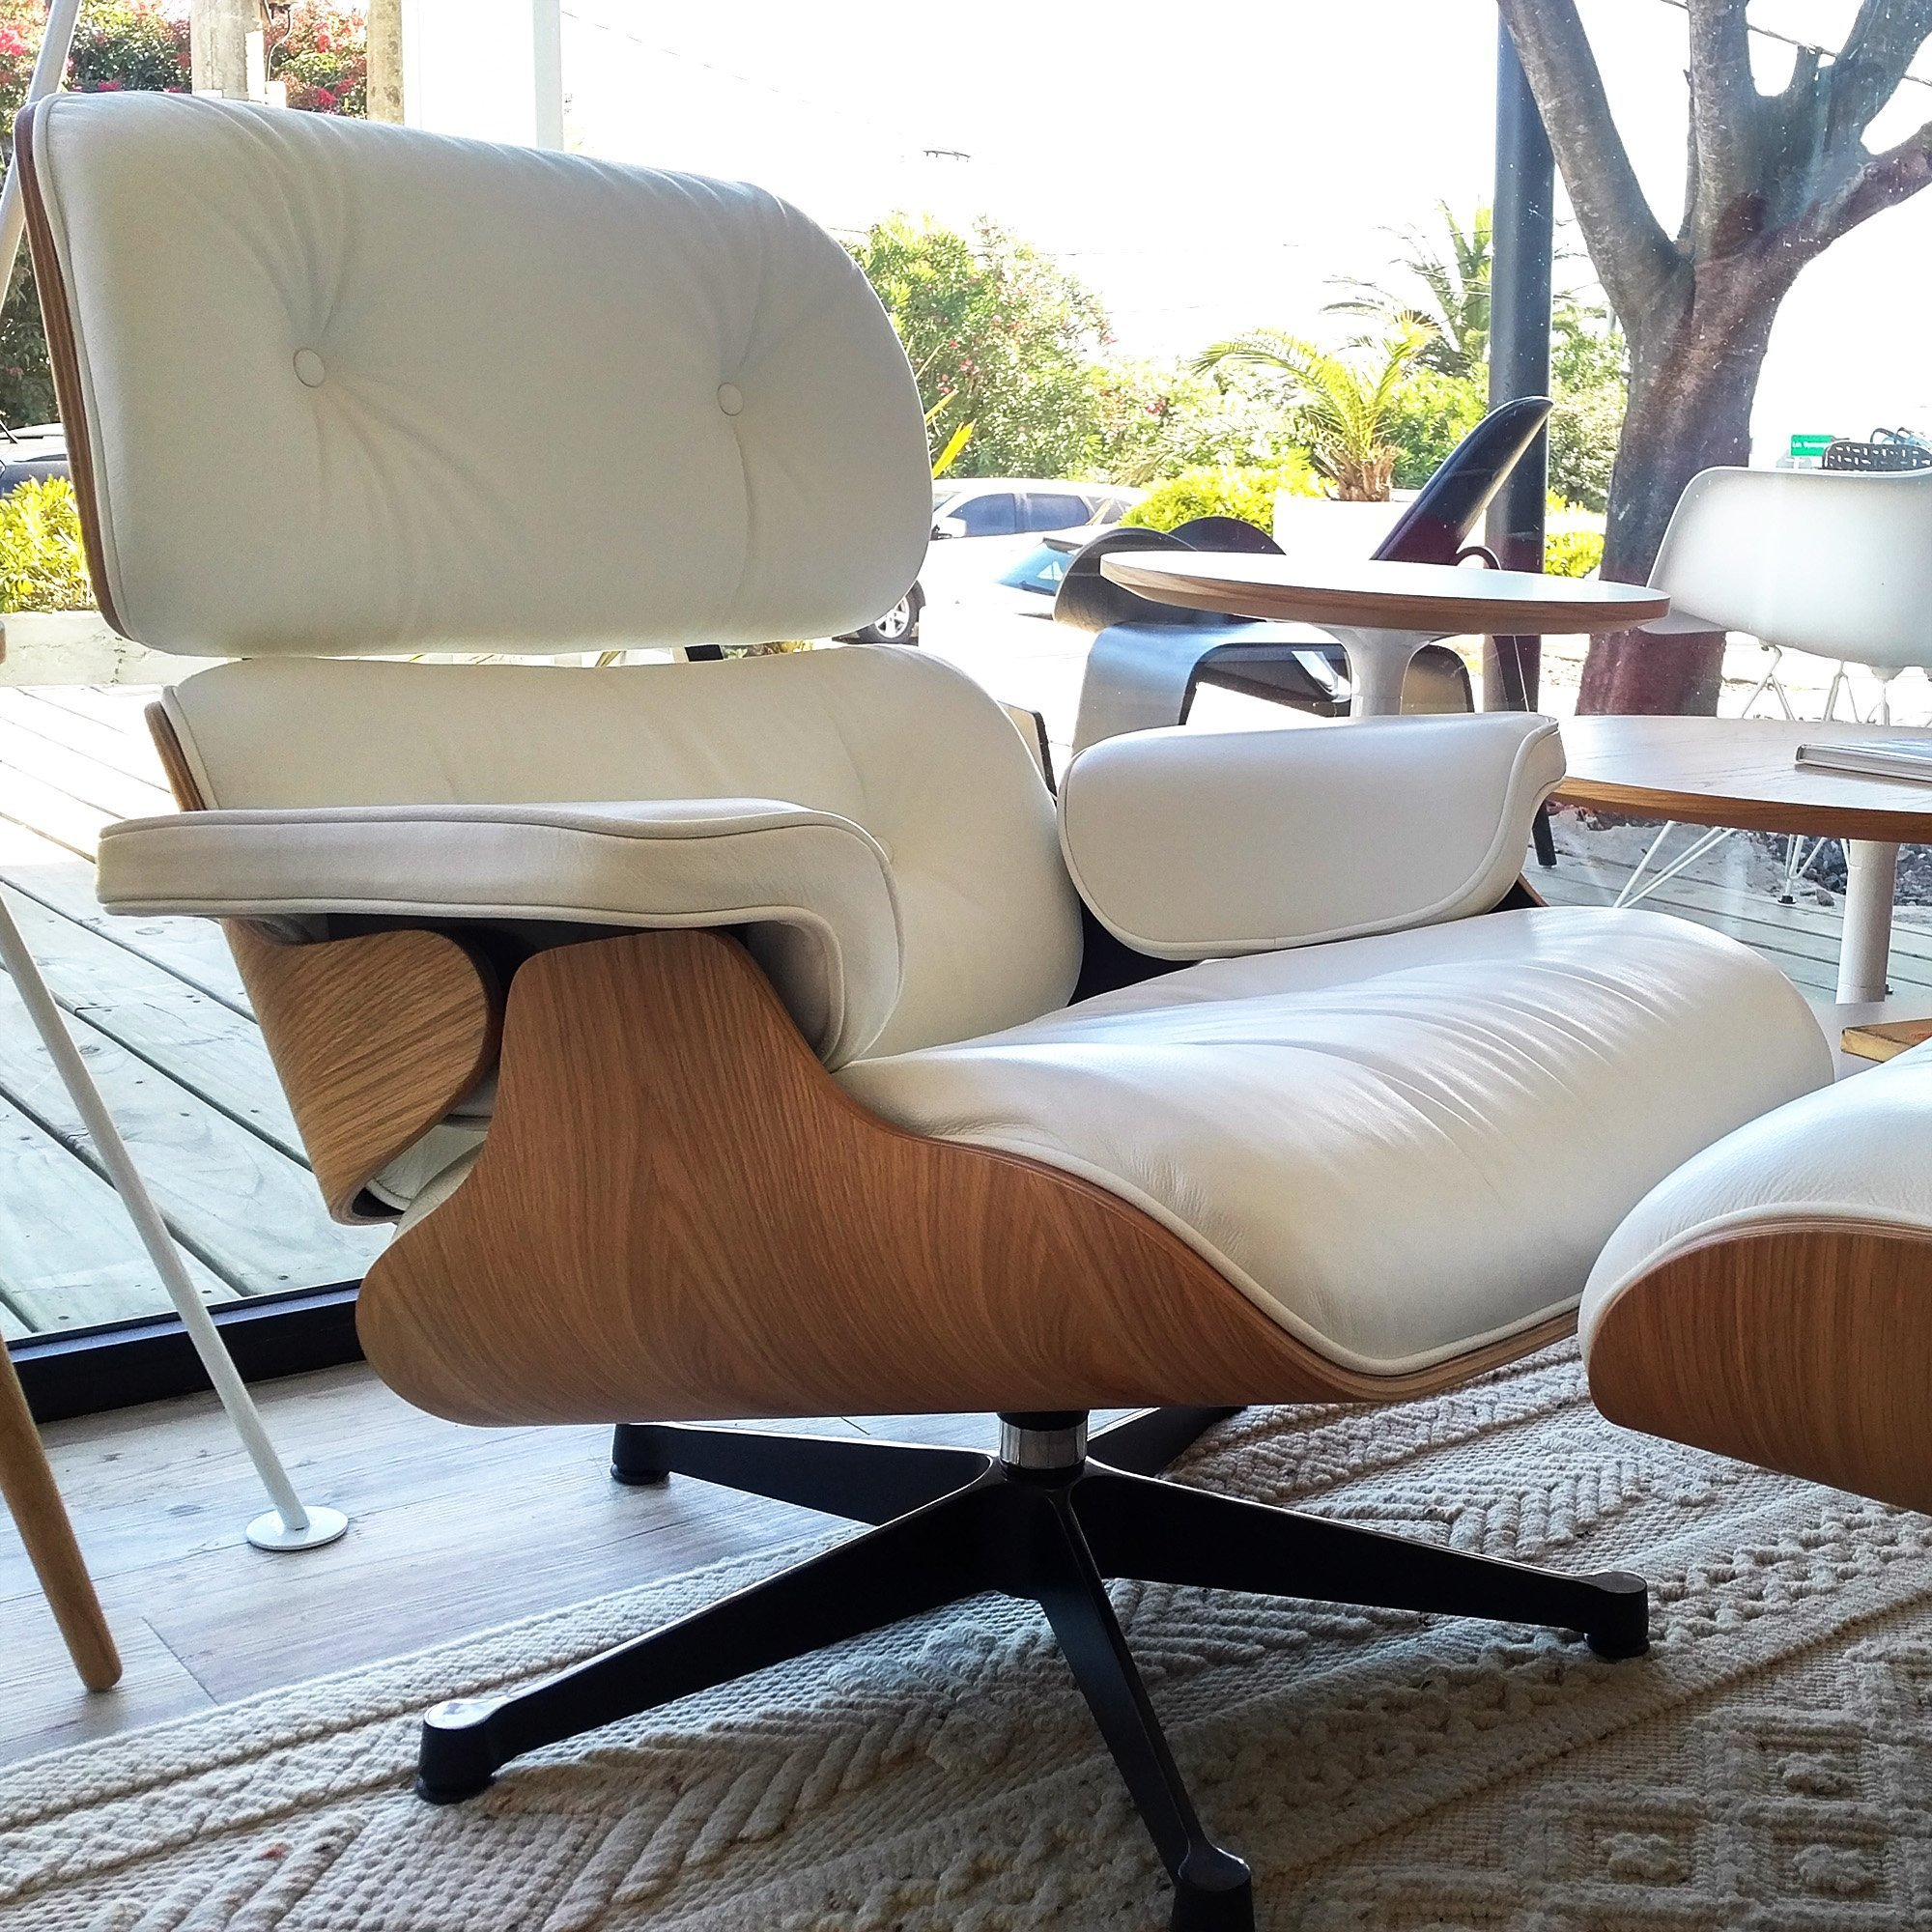 Butaca Charles Eames Lounge Chair Charles And Ray Eames Mad For Modern